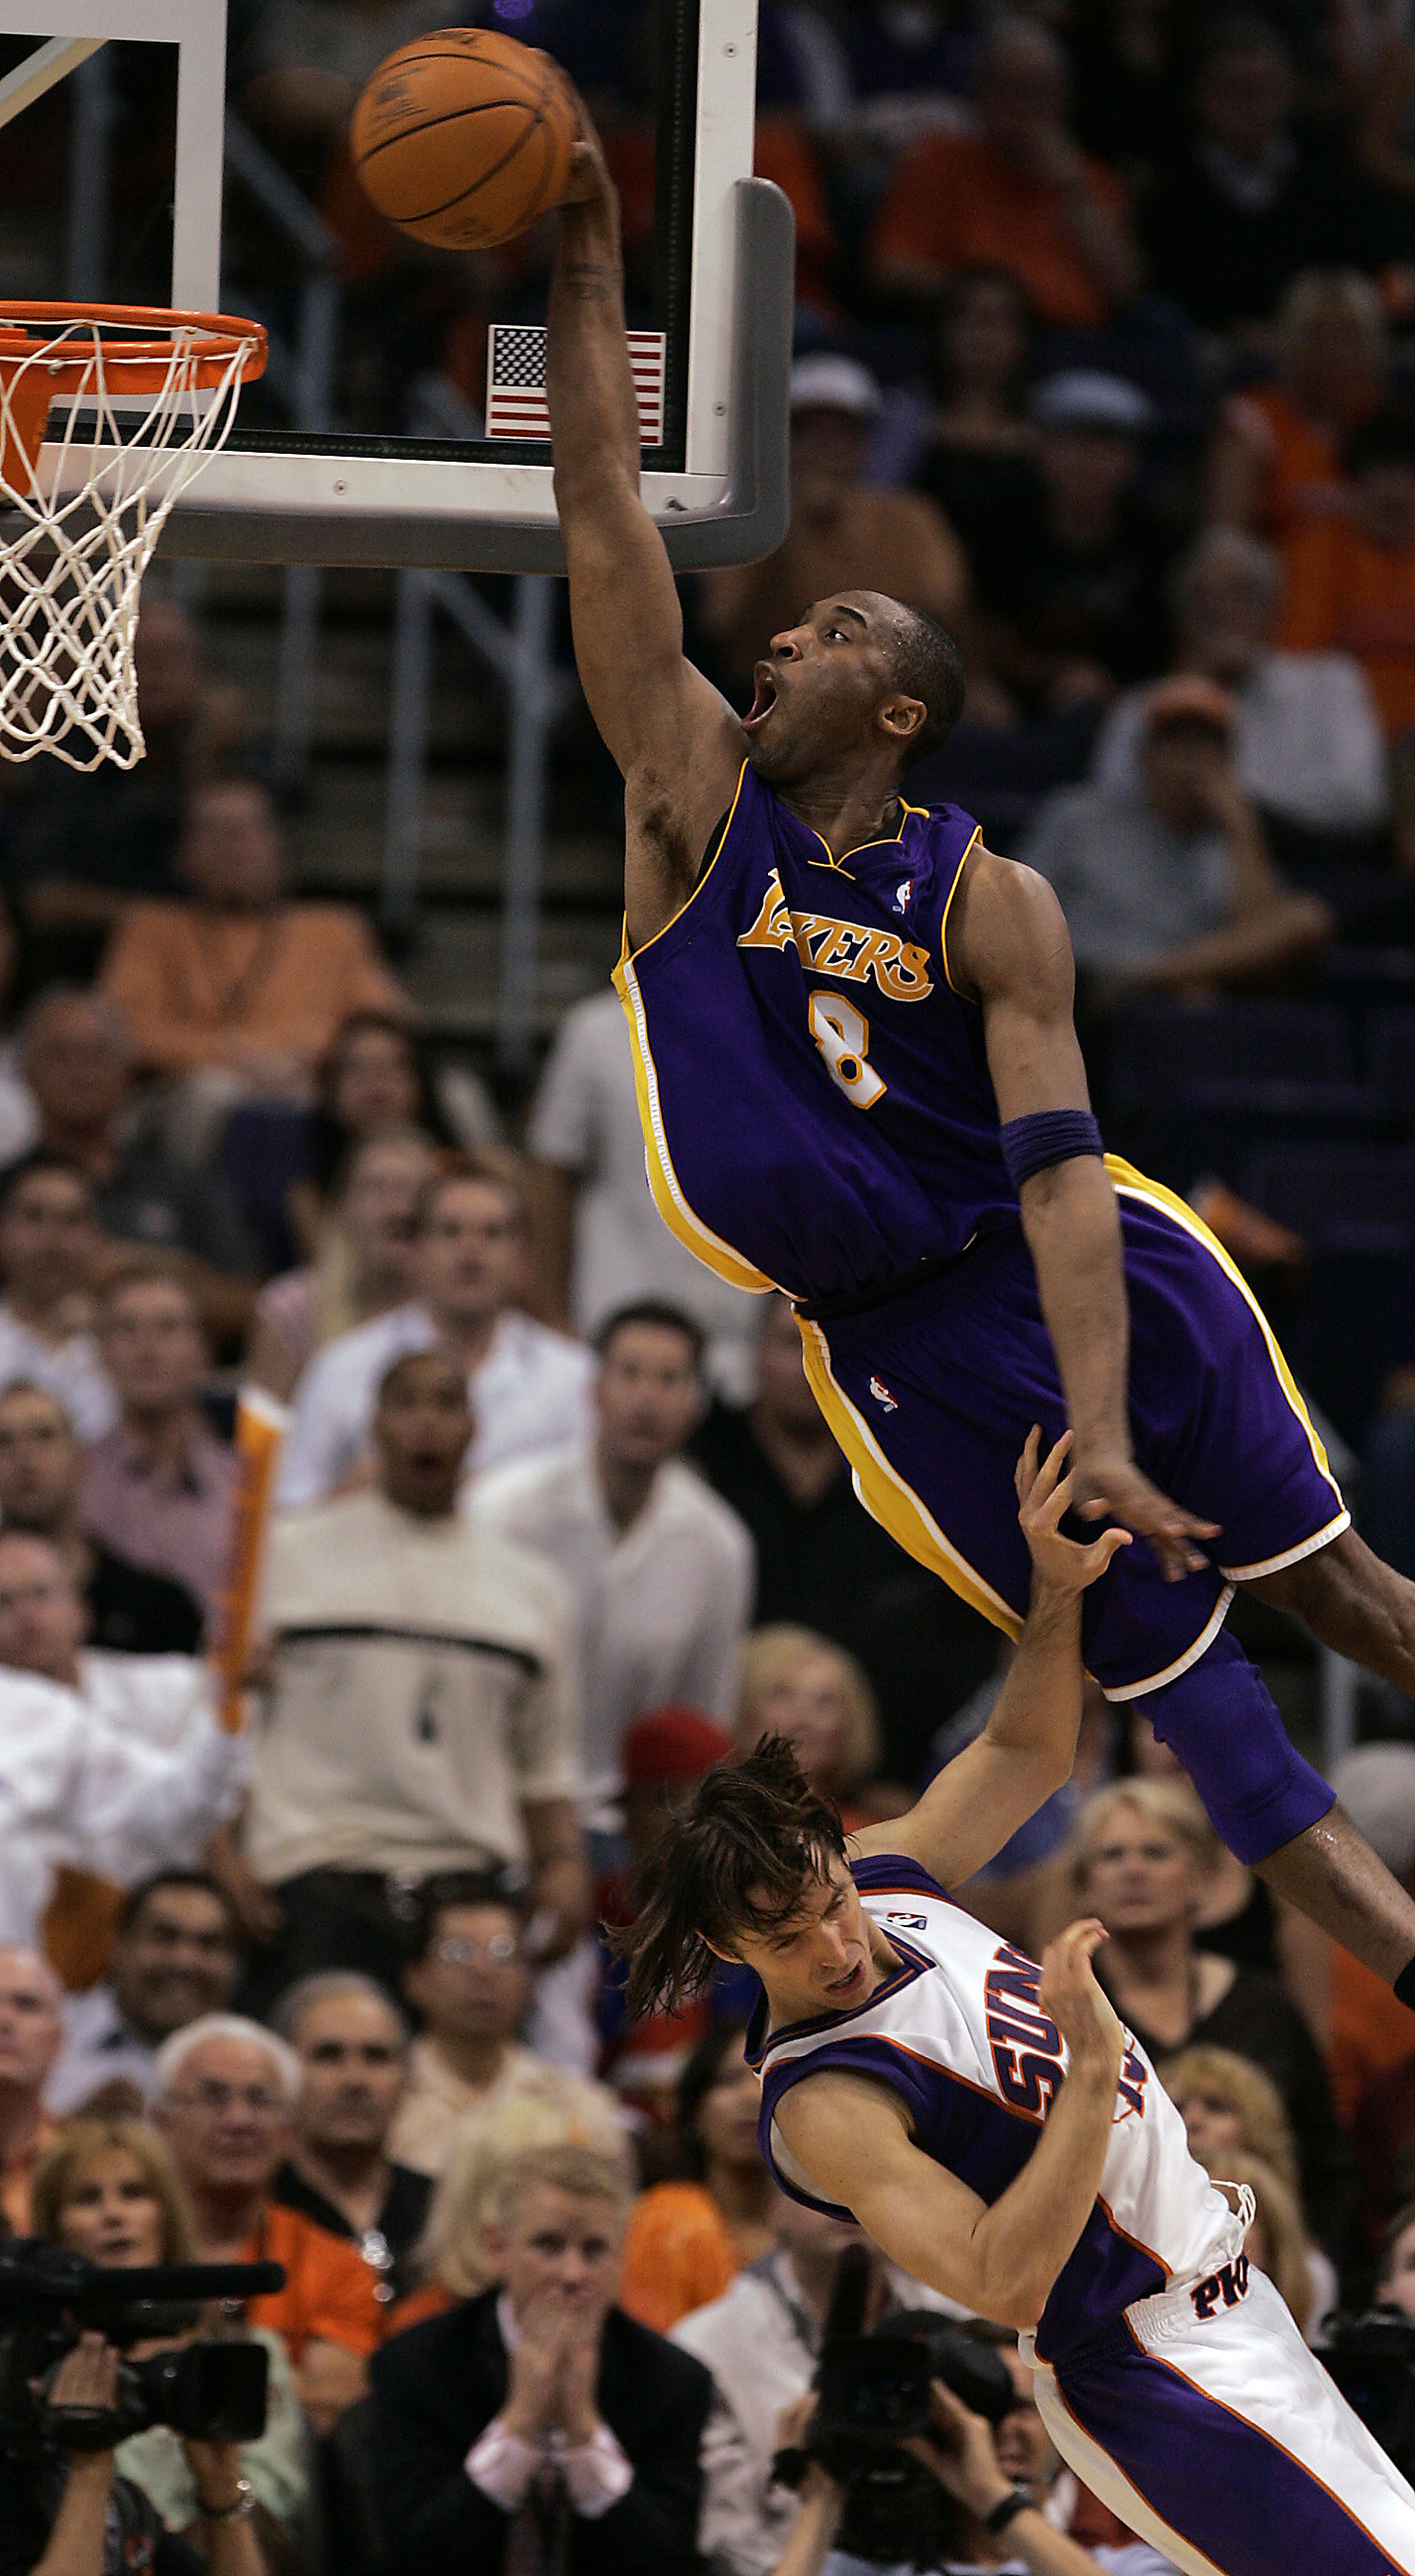 d42e59c2e94 Kobe Bryant goes for the dunk over the Phoenix Suns  Steve Nash in the  fourth quarter with emphasis in game two of the NBA Western Conference  quarterfinals ...